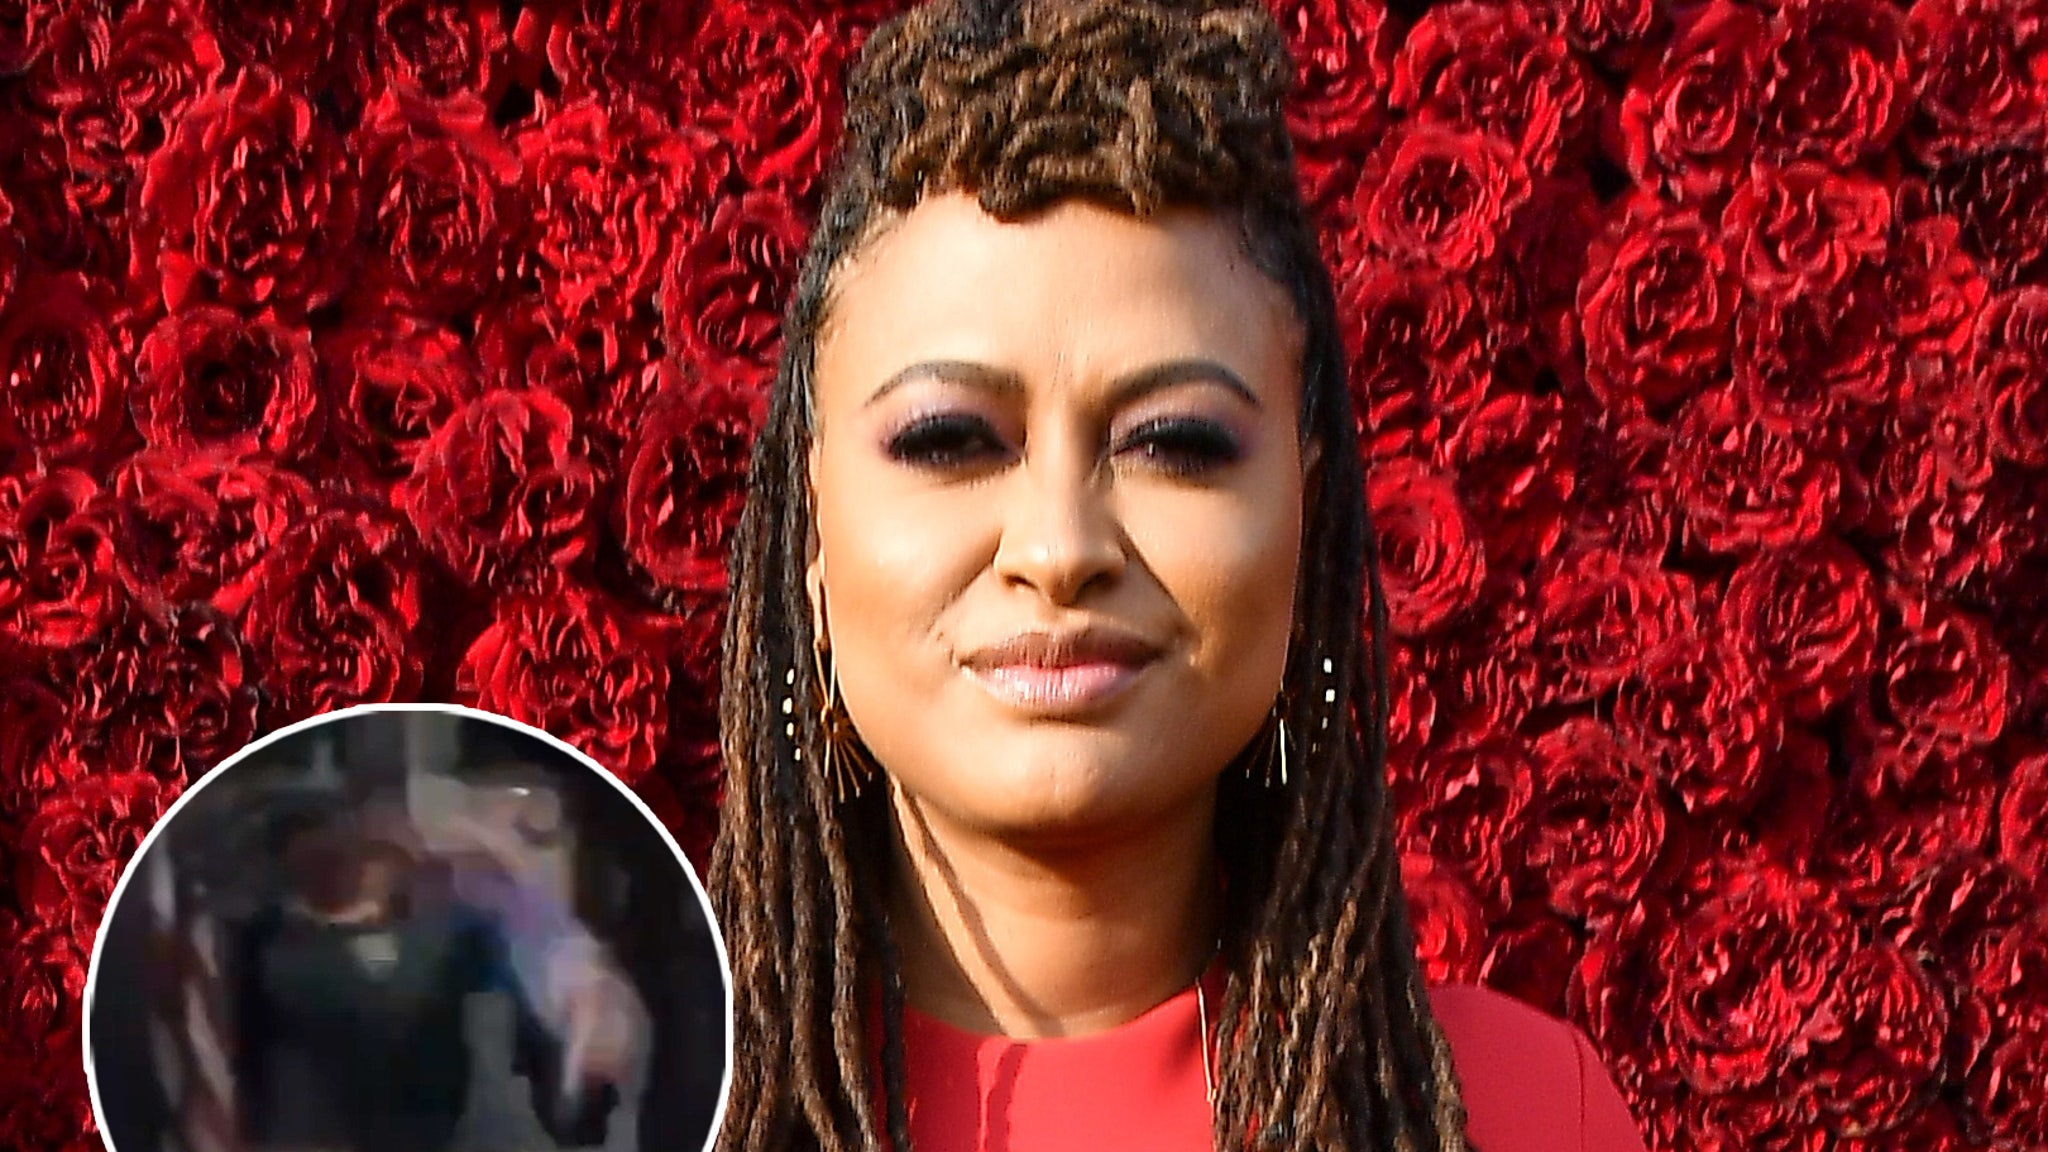 Ava DuVernay Posts Video of Black Protesters Stopping White Looters, Accuses Media of Ignoring it